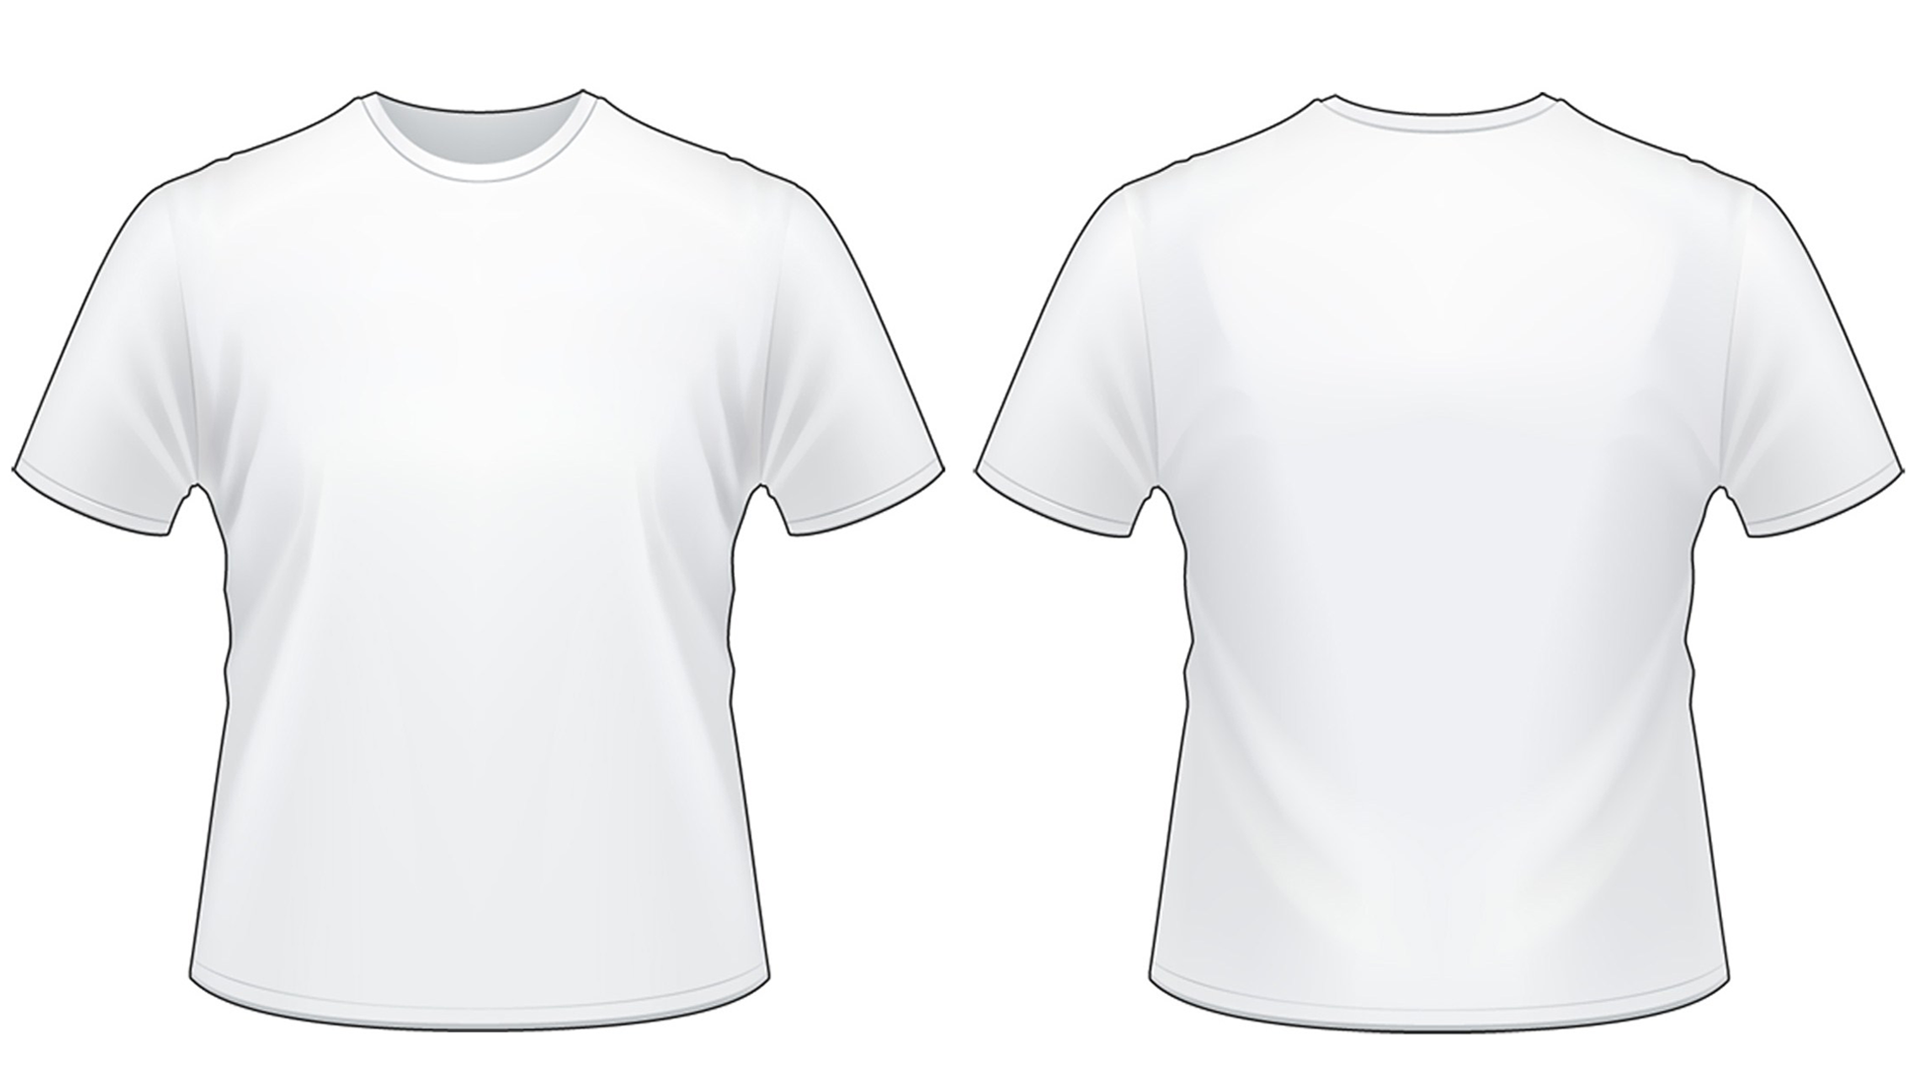 Blank Tshirt Template Worksheet In Png Hd Wallpapers Wallpapers Download High Resolution Wallpapers Shirt Template Tshirt Template Blank T Shirts Free vector icons in svg, psd, png, eps and icon font. blank tshirt template worksheet in png